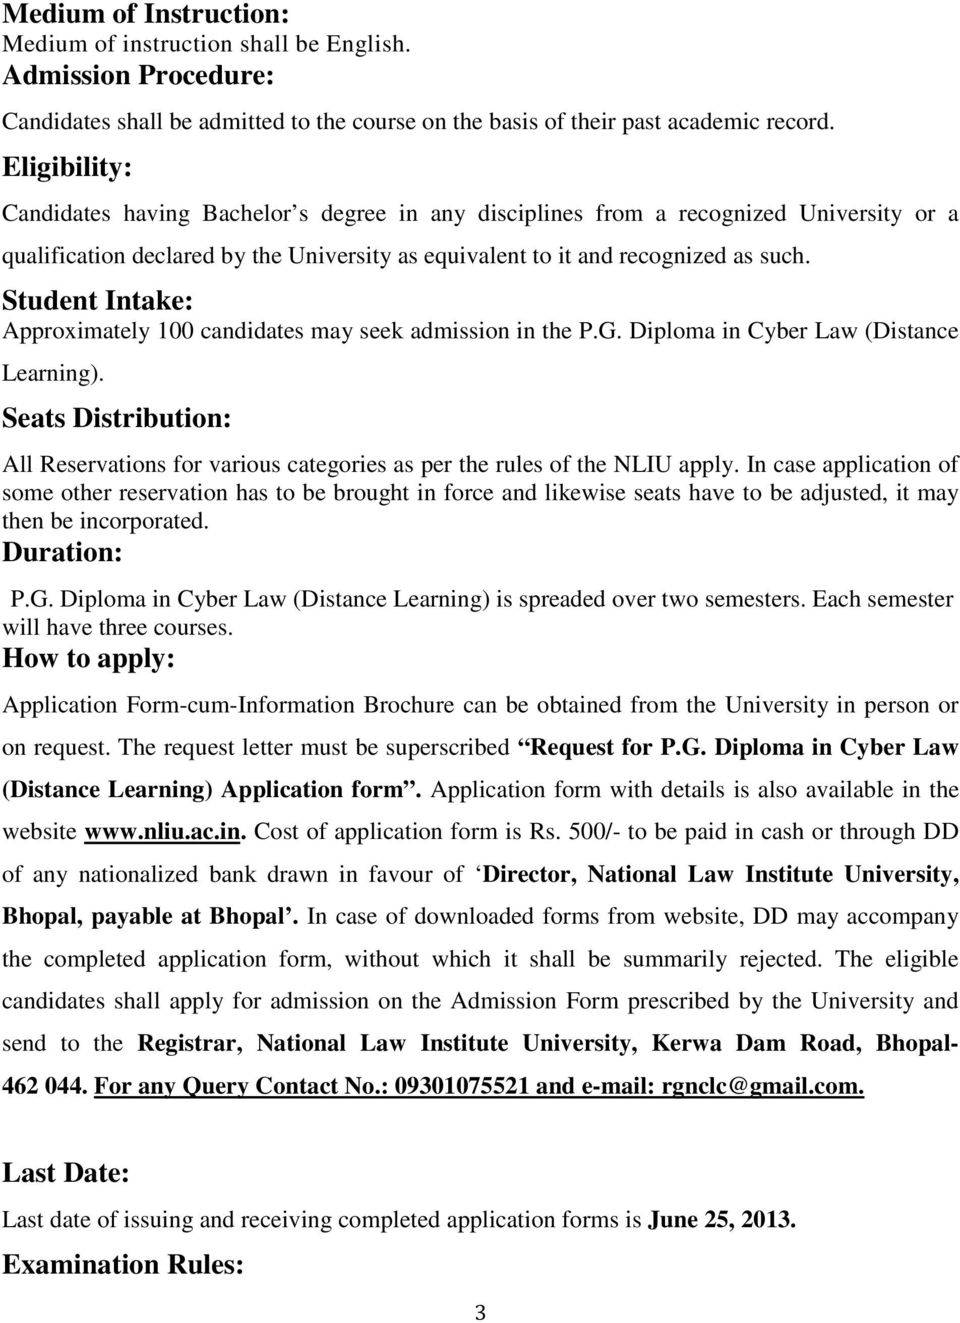 Student Intake: Approximately 100 candidates may seek admission in the P.G. Diploma in Cyber Law (Distance Learning).